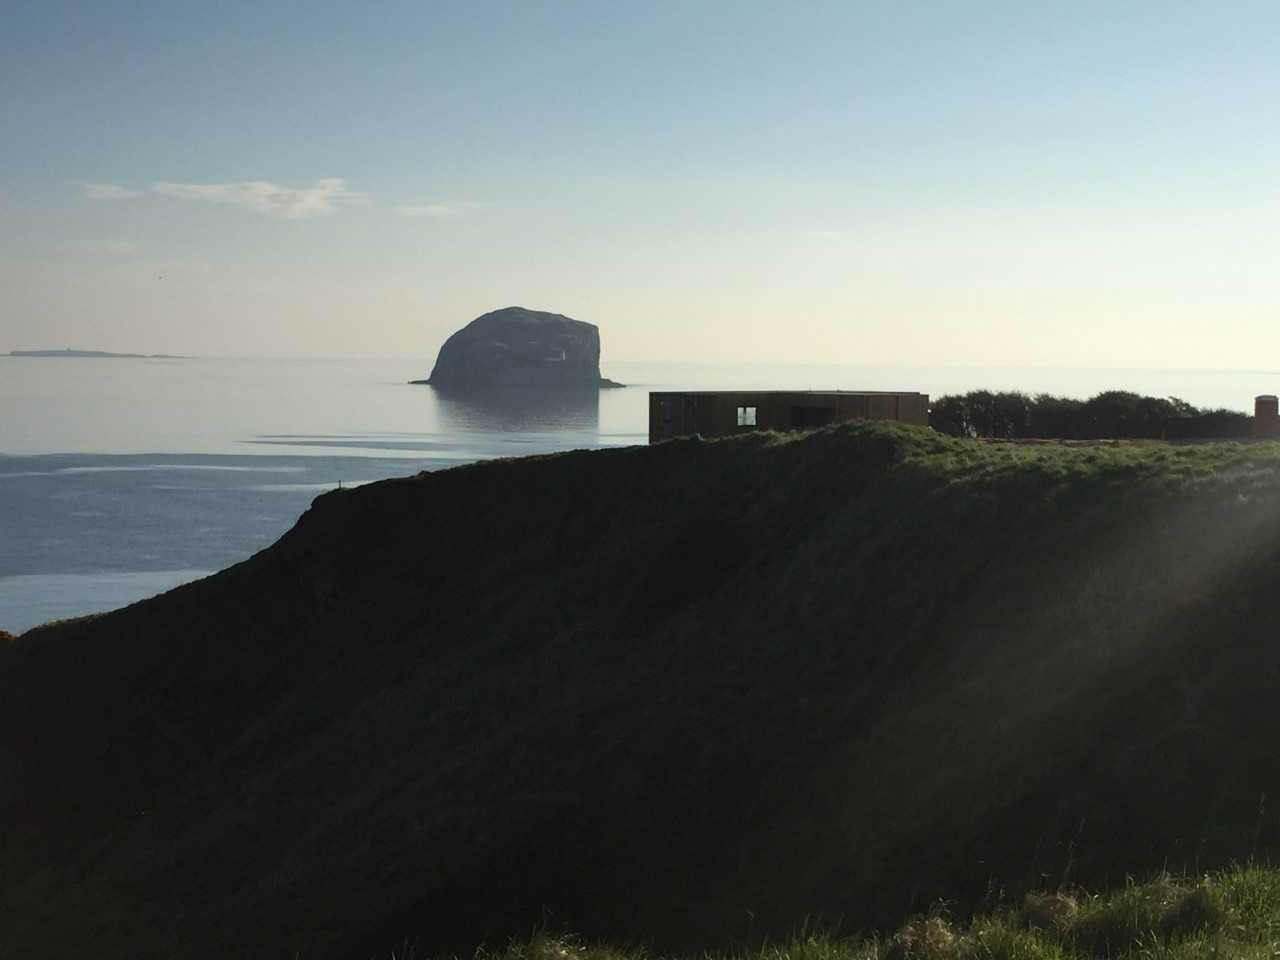 The clifftop cafe will have a stunning view of the Bass Rock